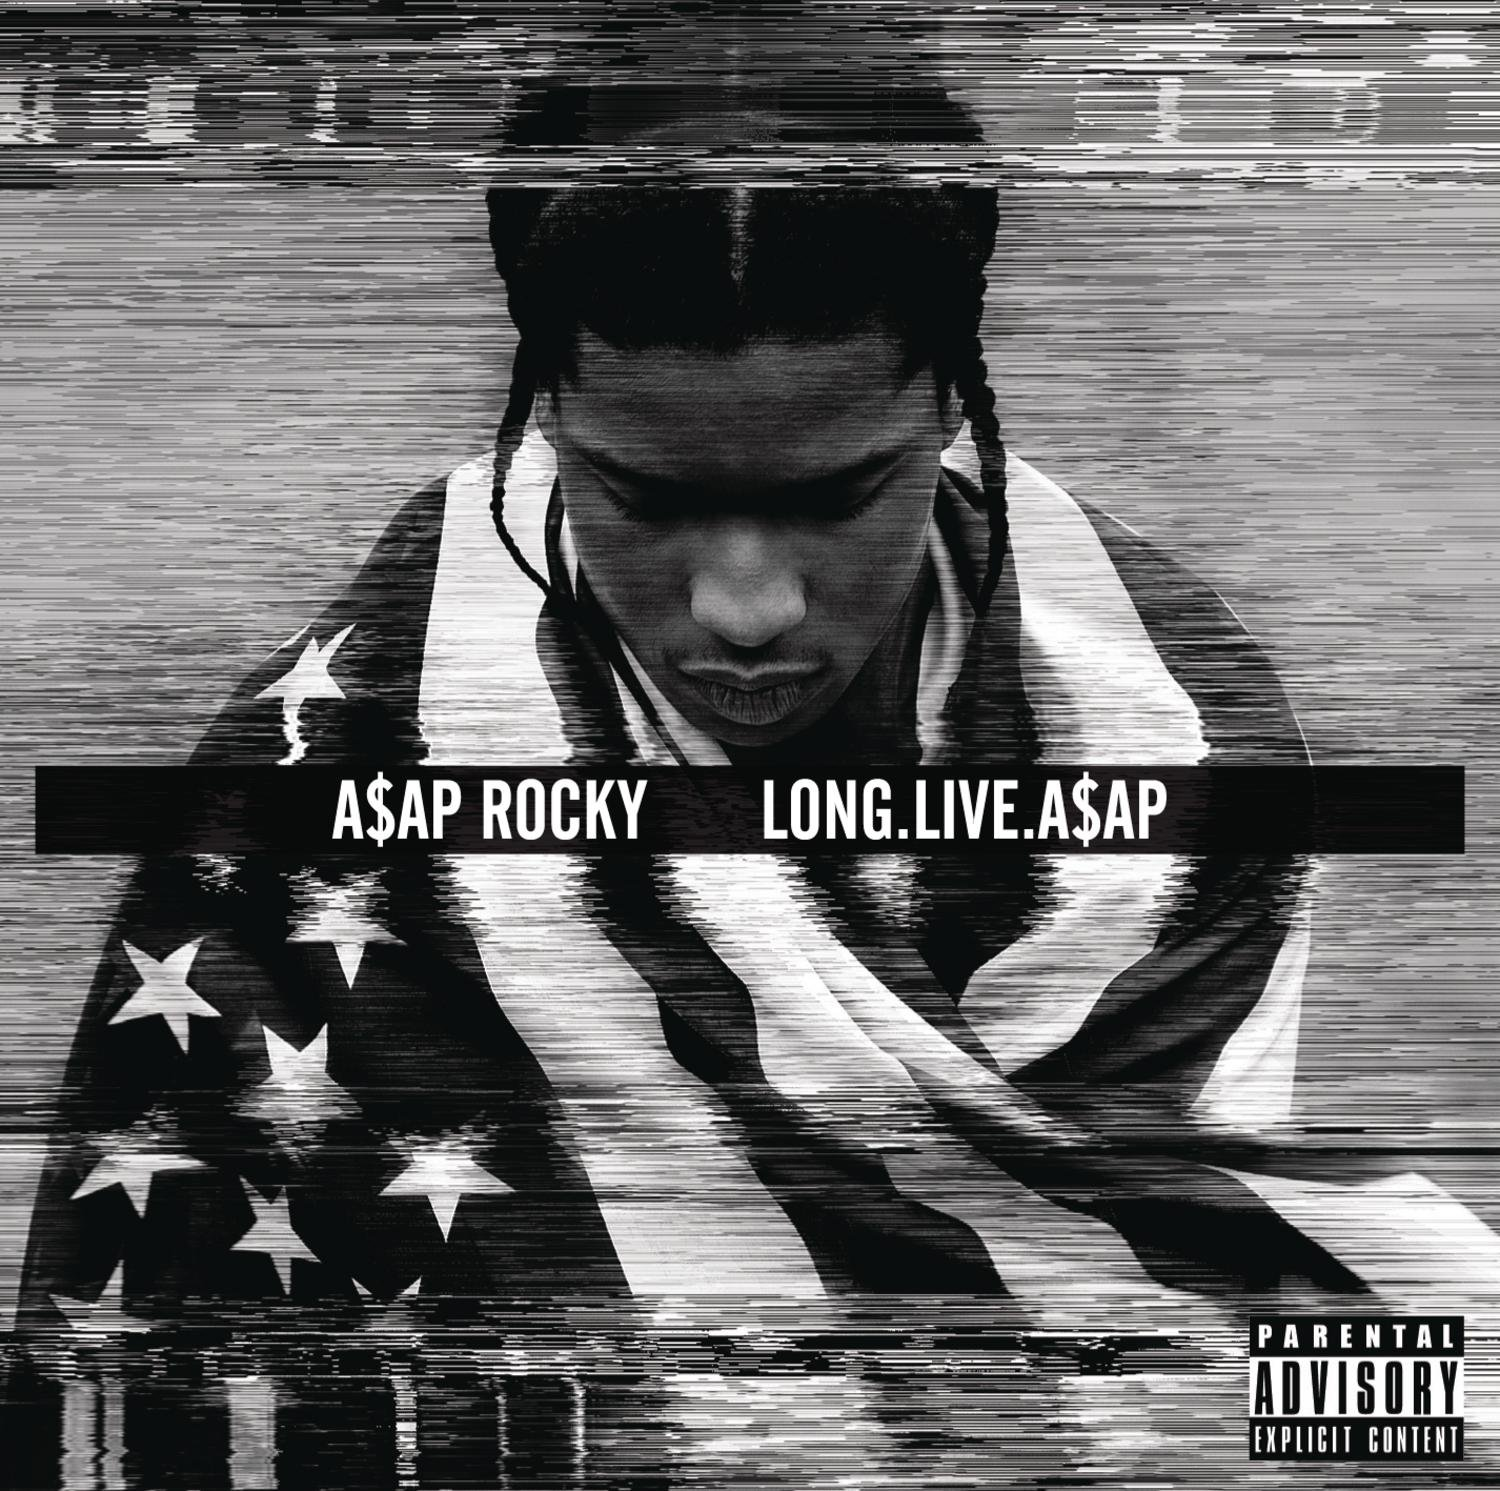 Asap Rocky Fashion Killa Free Mp3 Download A AP Rocky Long Live A AP